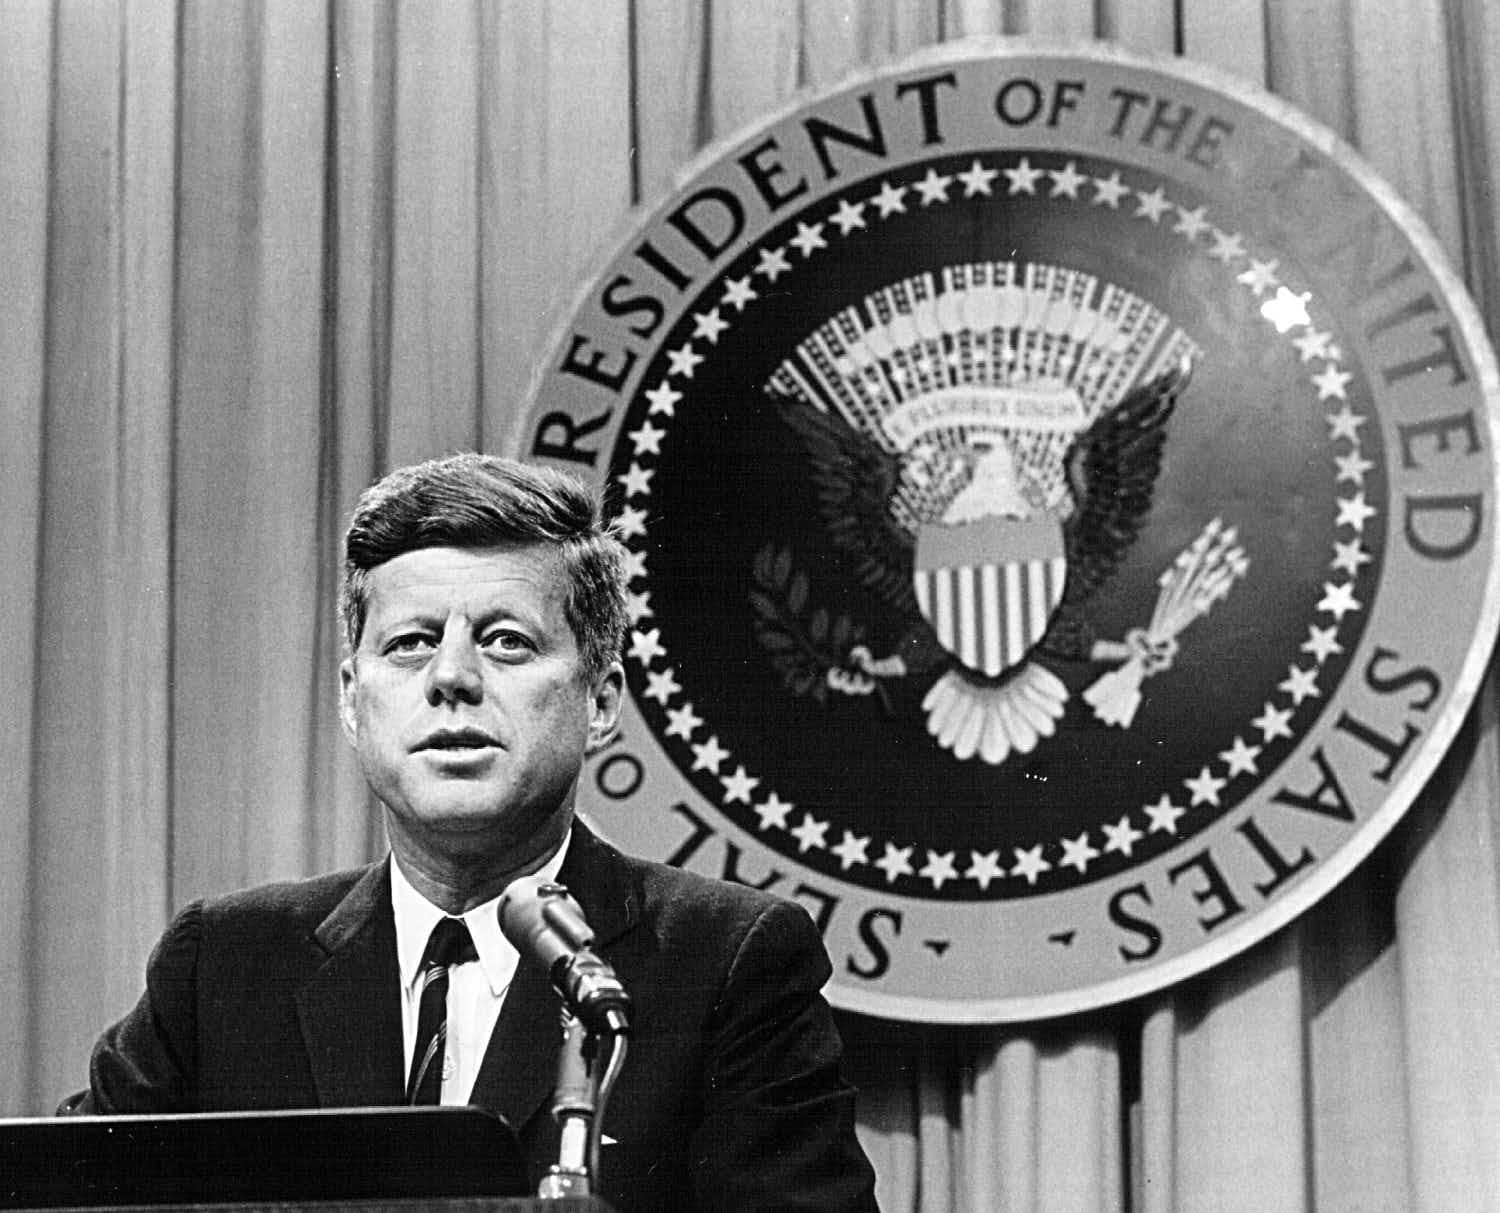 Commemorating JFK: here's five ways you can mark the 100th birthday of the late president